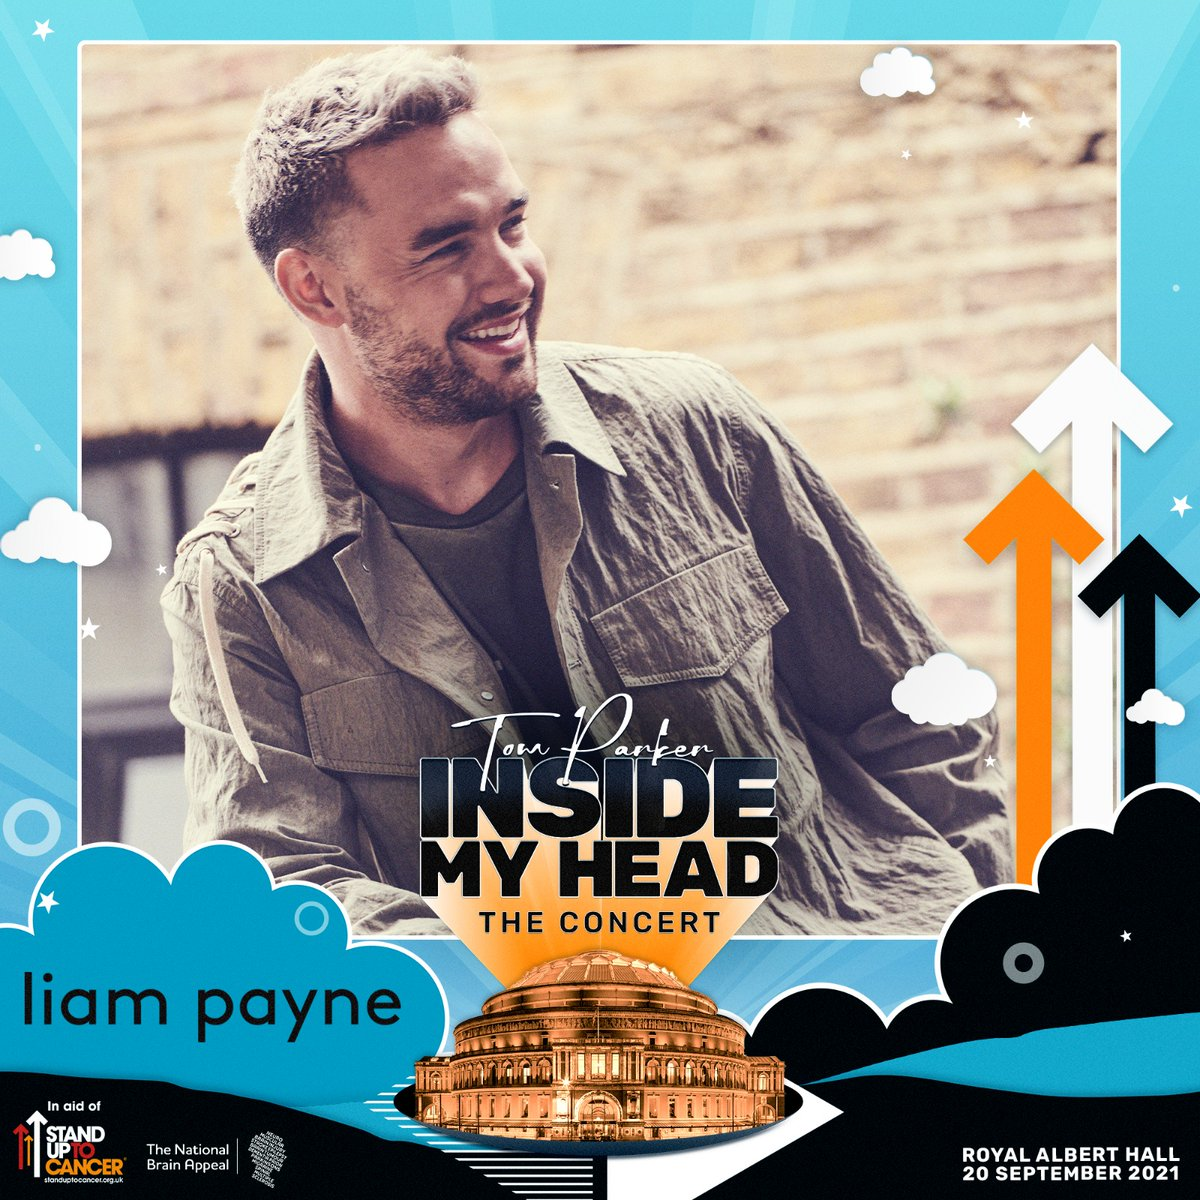 I'm so honoured to be joining @TomParker's Inside My Head@RoyalAlbertHall show in support of@SU2CUK and@BrainAppeal 🙌🏼 It means the world that I can support Tom and his fundraising efforts by performing at the show, I can't wait. See you on Sept 20th! https://t.co/9mrXK62gCN https://t.co/zXalycZjf0